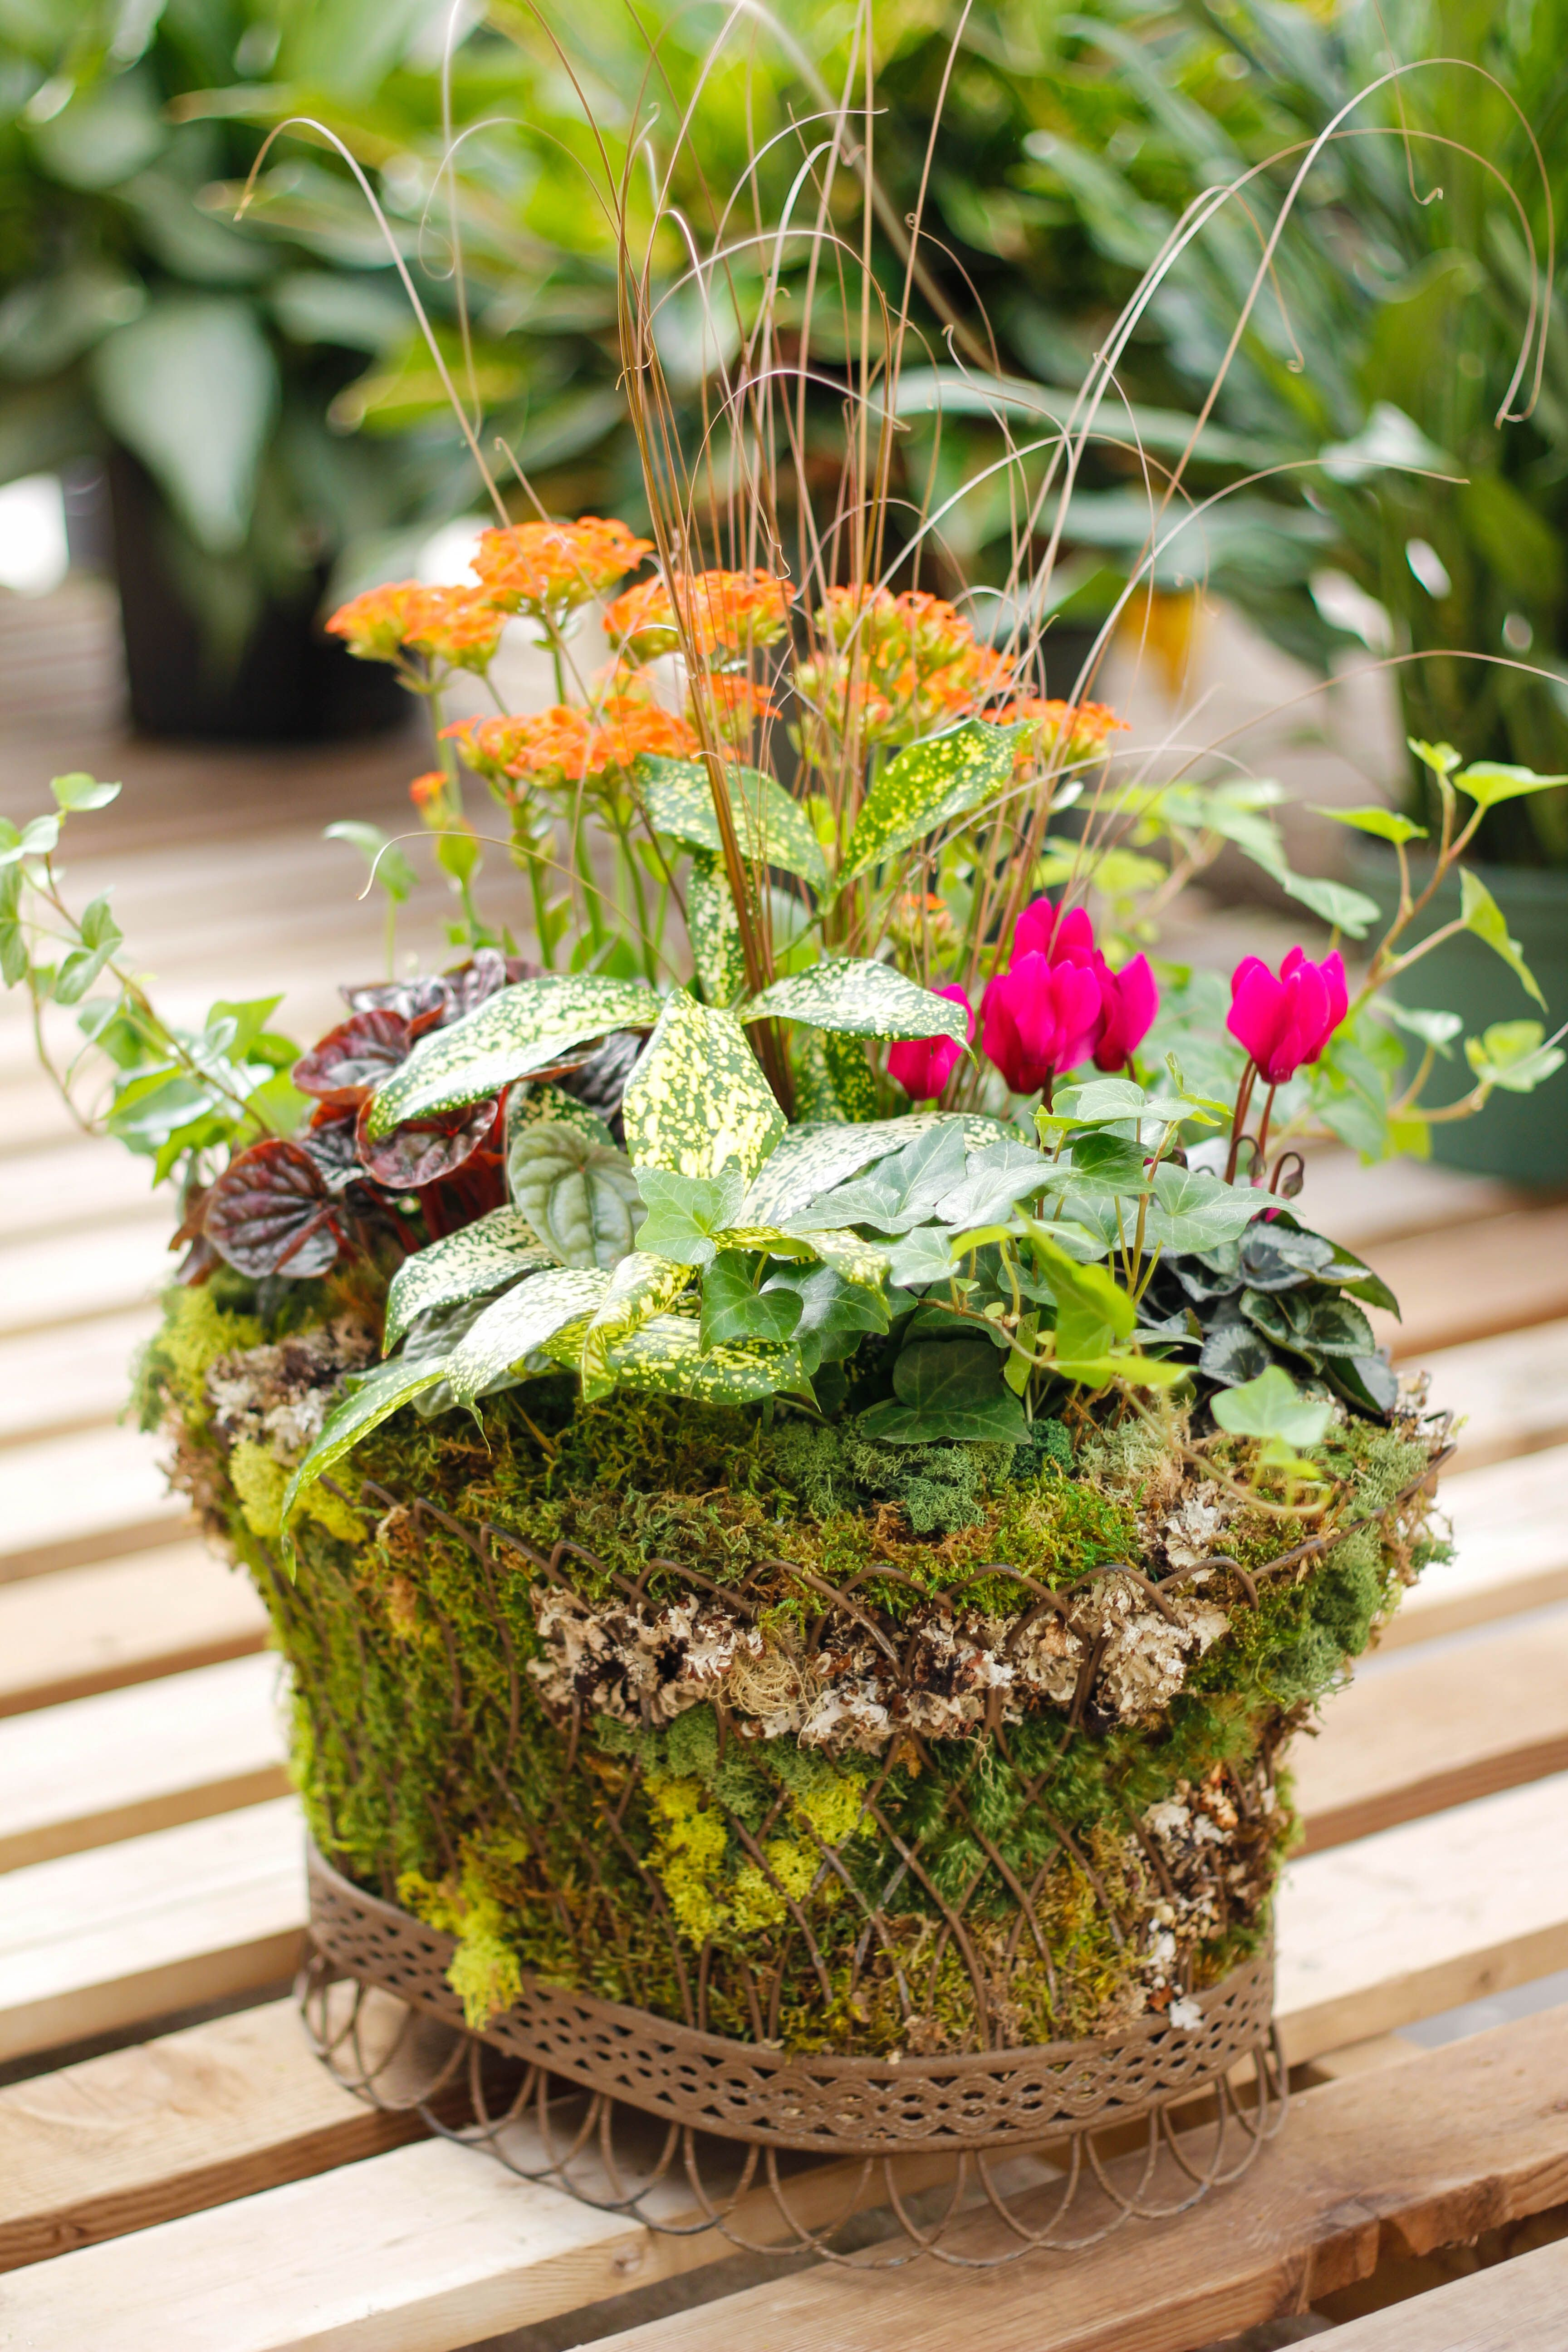 Dish gardens make great gifts or beautiful decorations in